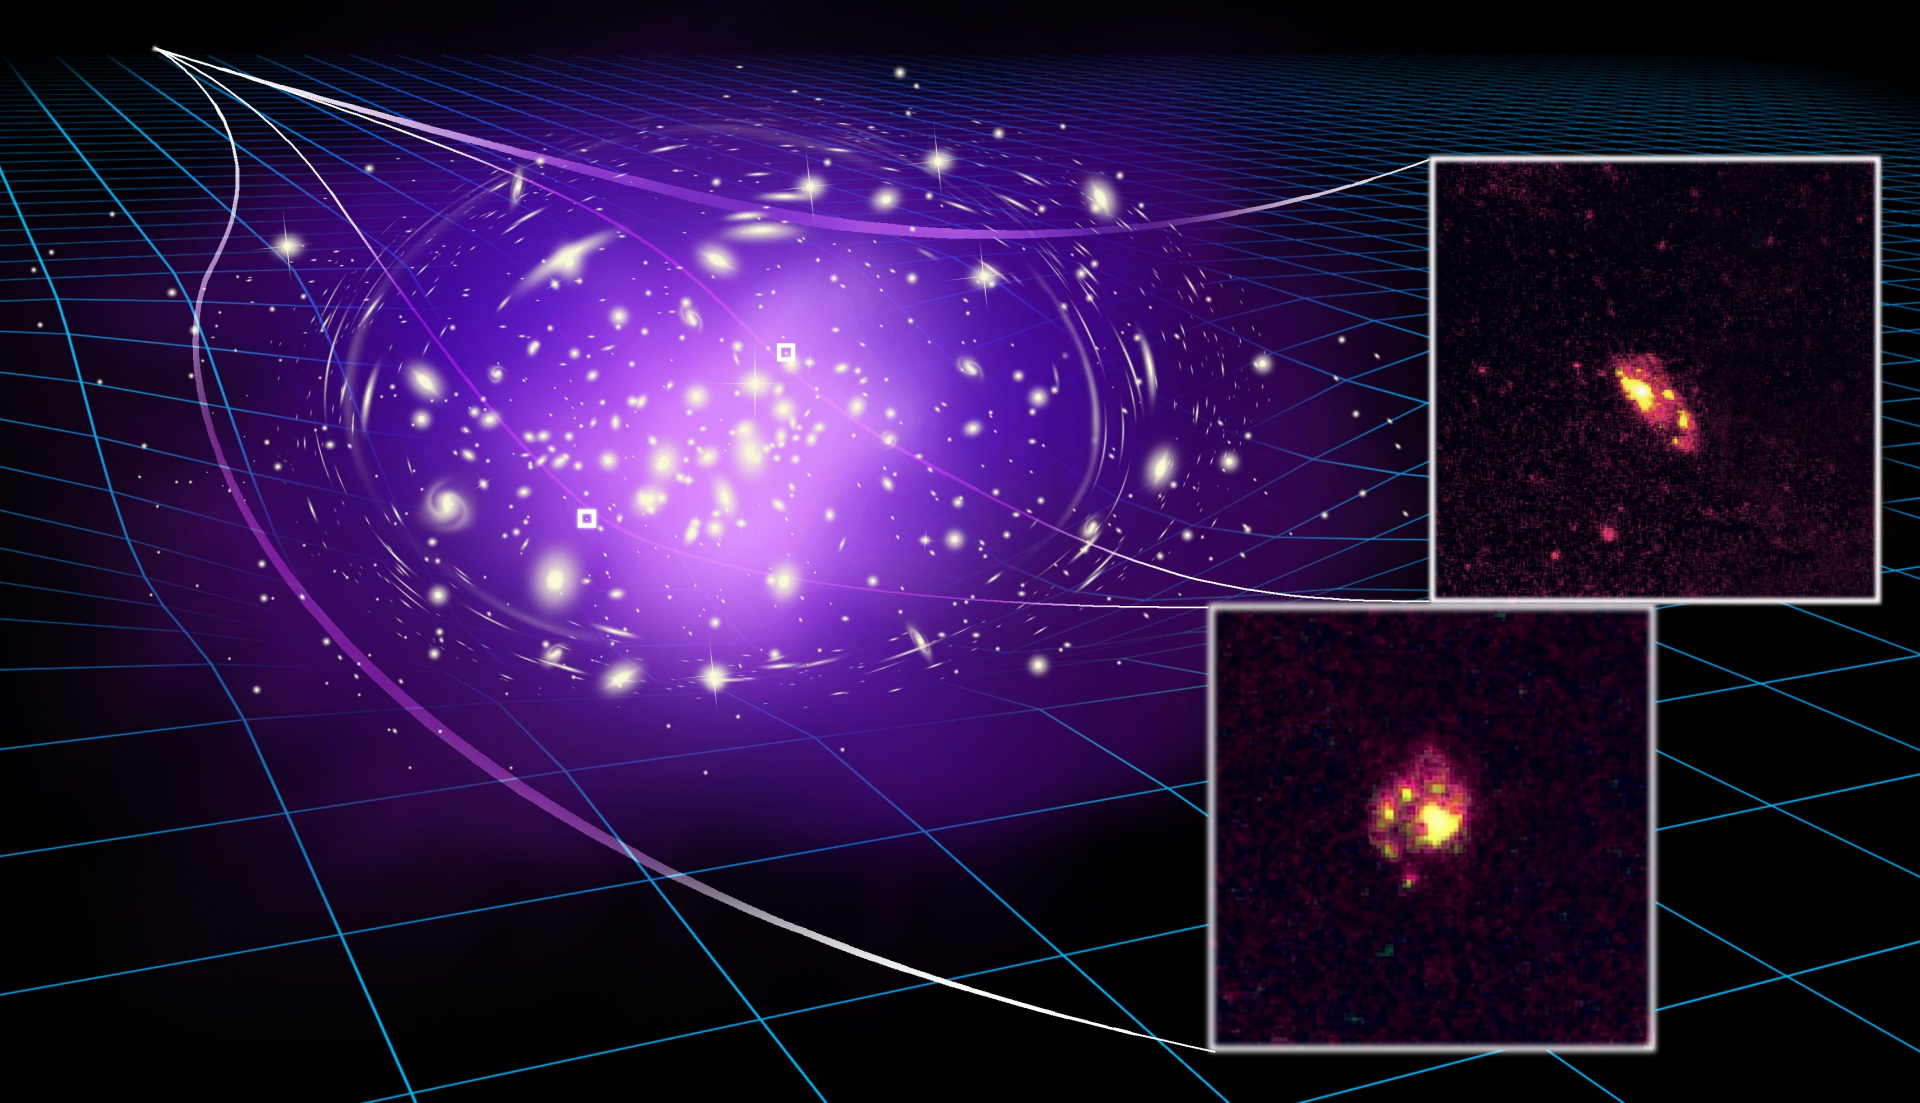 Oldest spiral galaxy ever seen may reveal secrets about the Milky Way